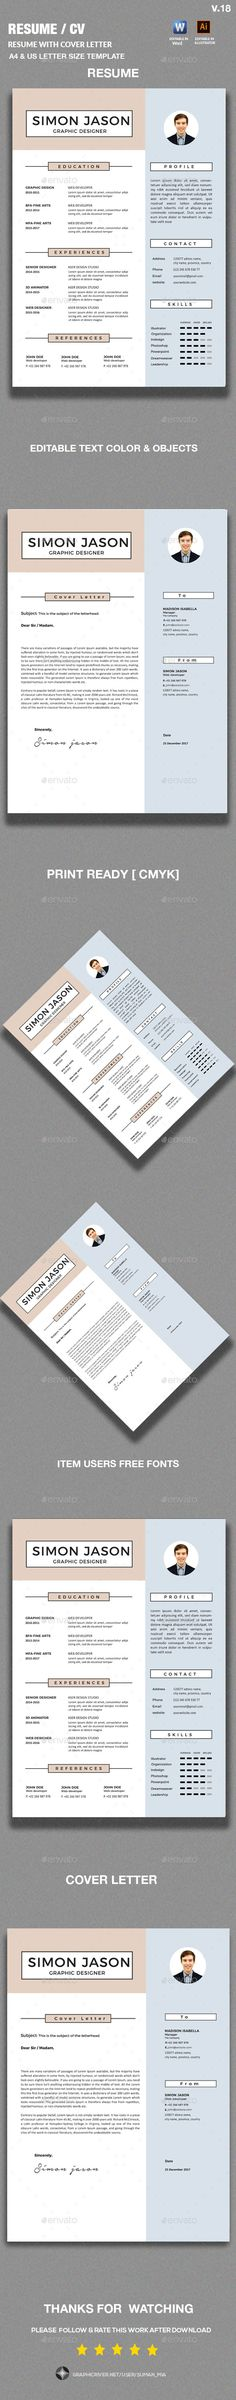 Resume for Marketing, Resume for Sales - Resume for Word Mac\/PC + - cover letter elements